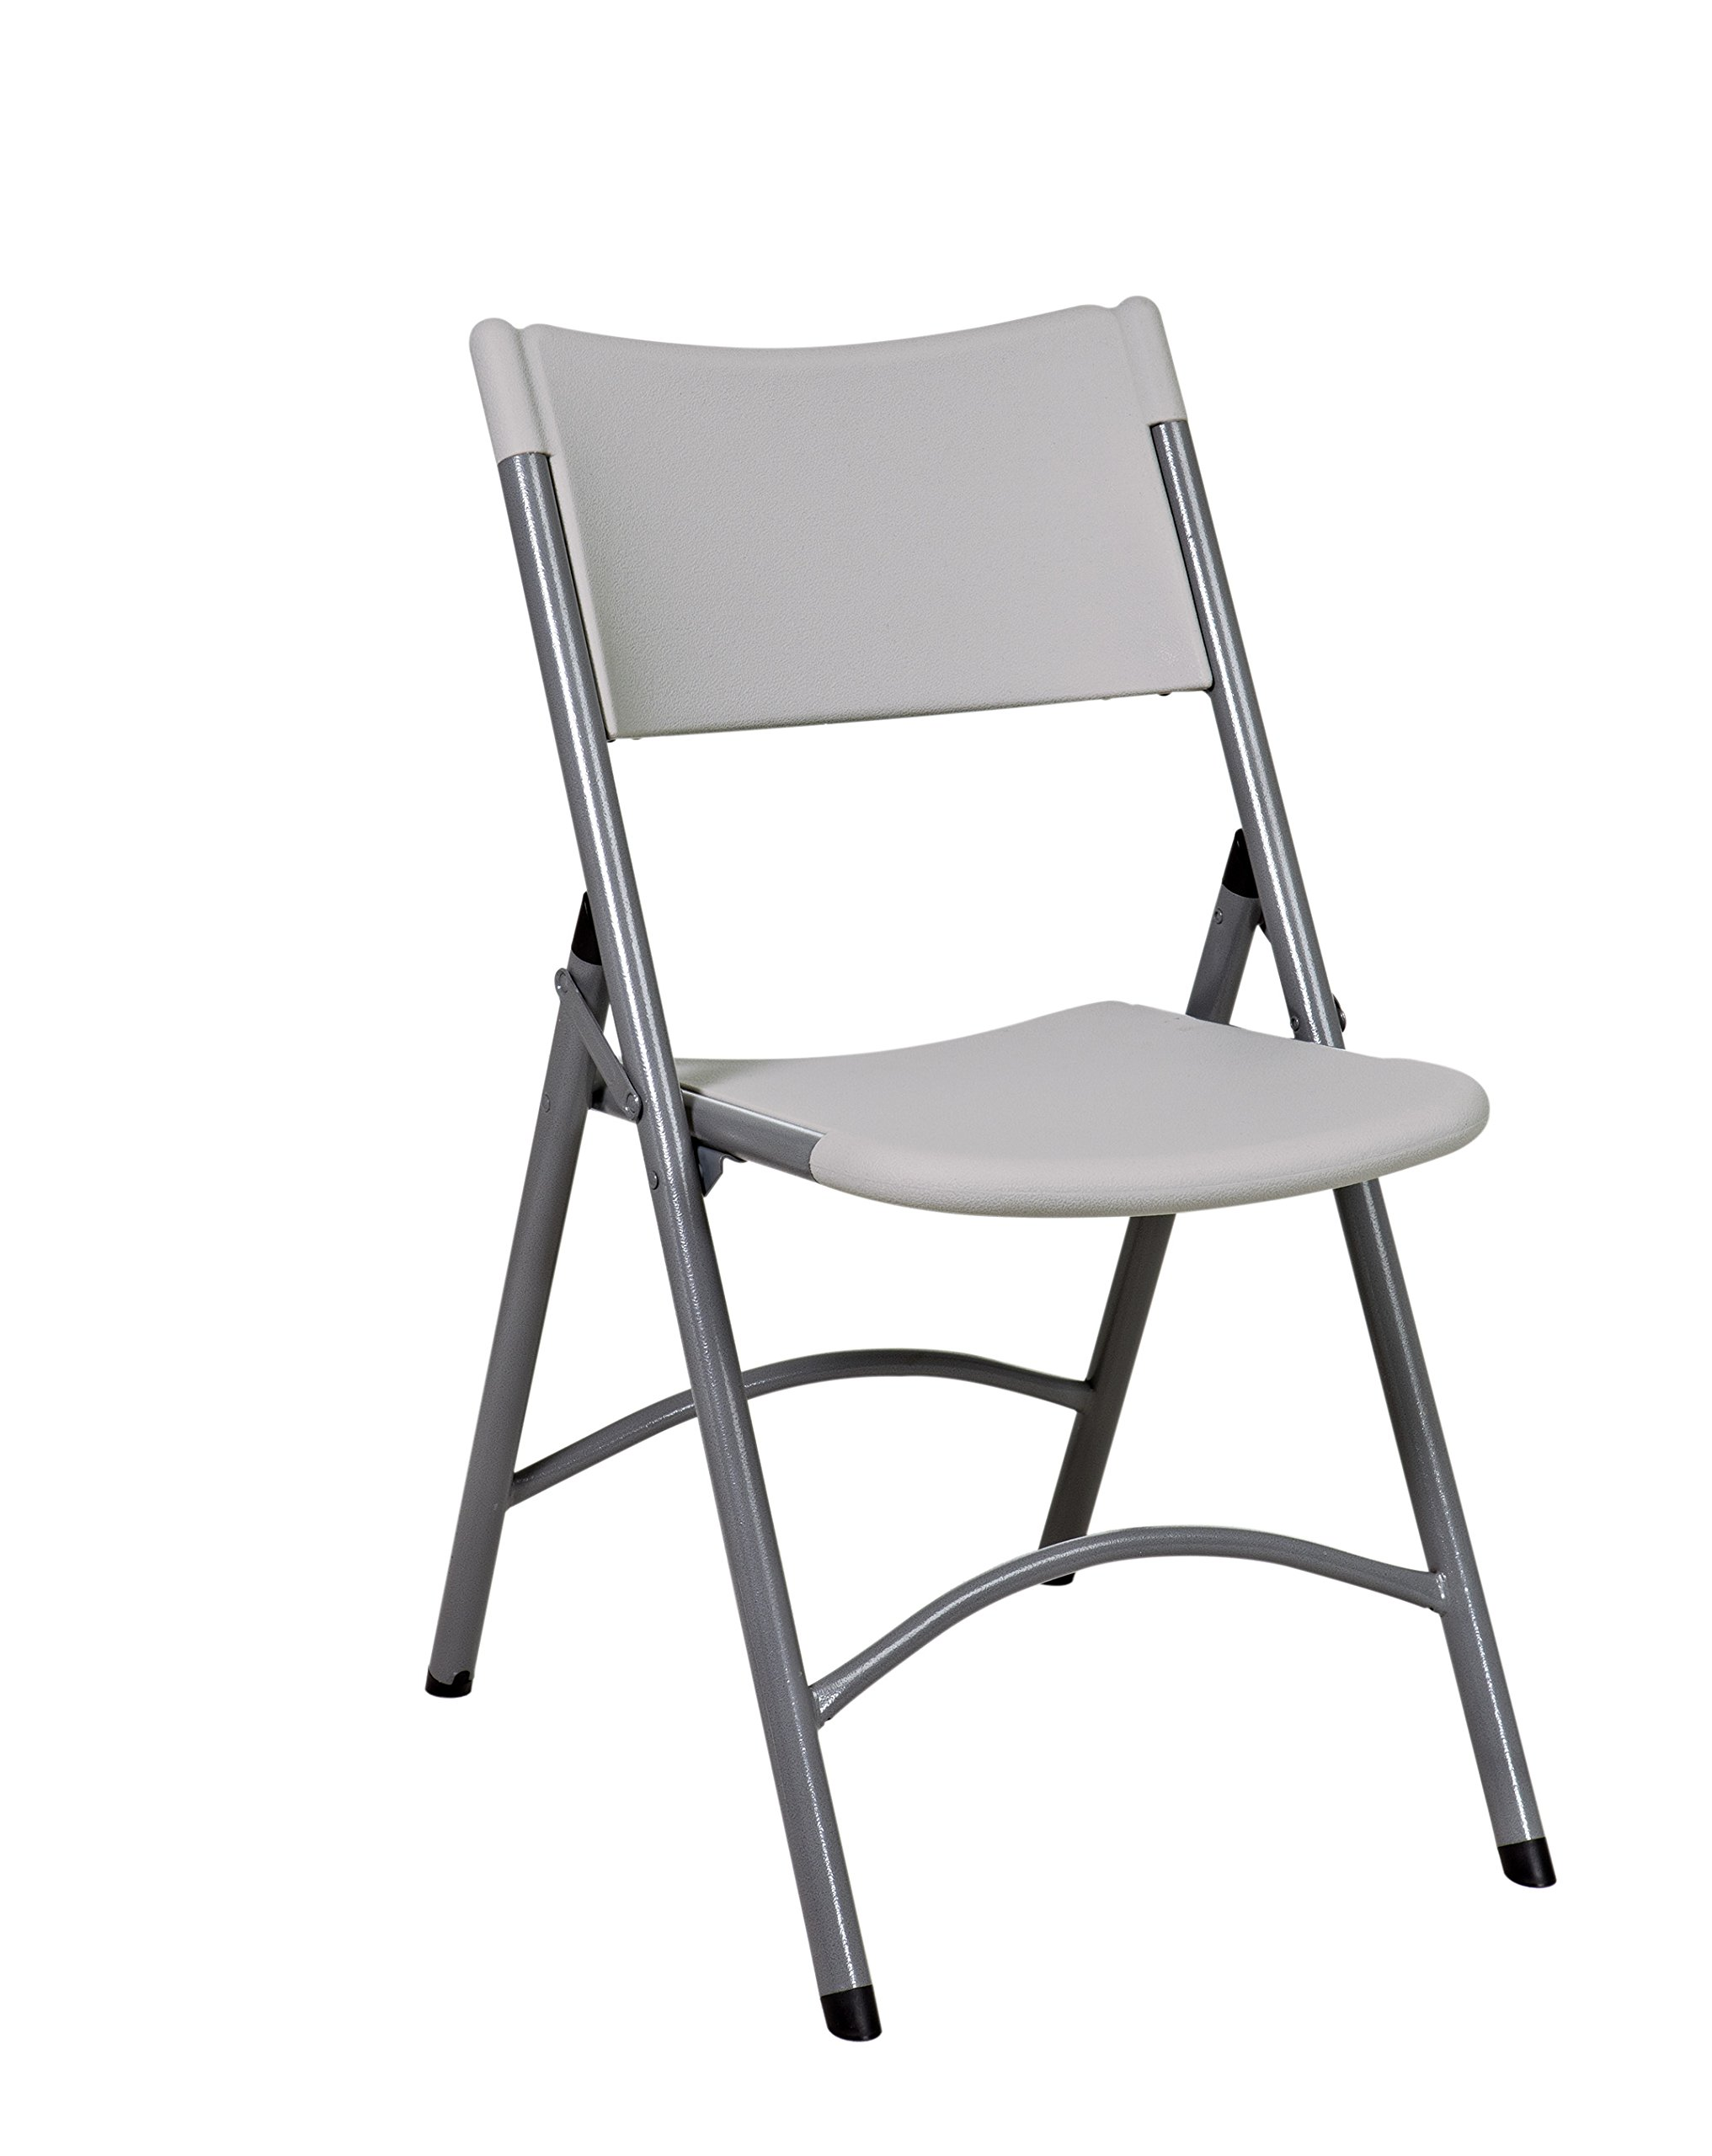 Office Star Resin Multi-Purpose Sqaured Folding Chair with Grey Accents, Set of 4 by Office Star